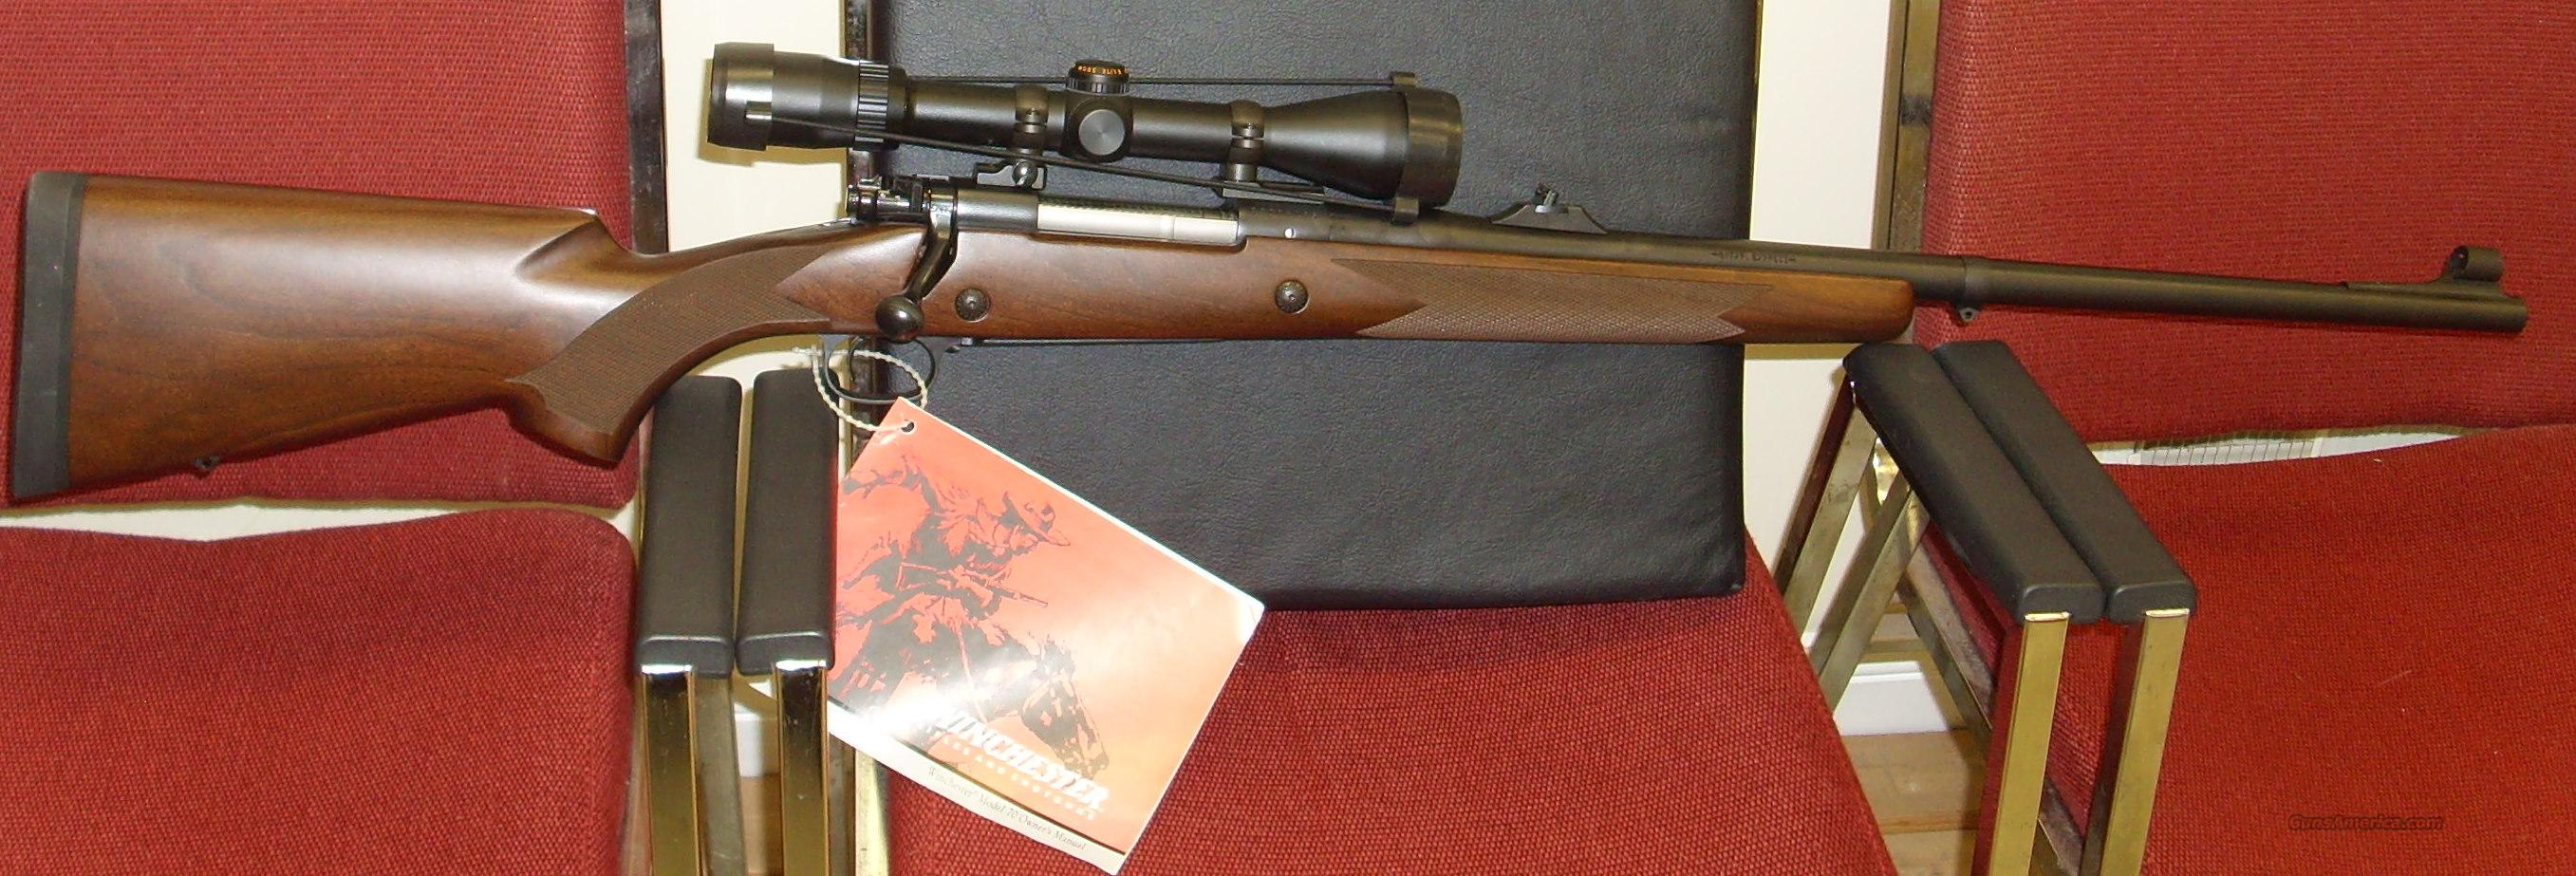 Winchester Model 70 375 H & H MAG./Safari Express  Guns > Rifles > Winchester Rifles - Modern Bolt/Auto/Single > Model 70 > Post-64